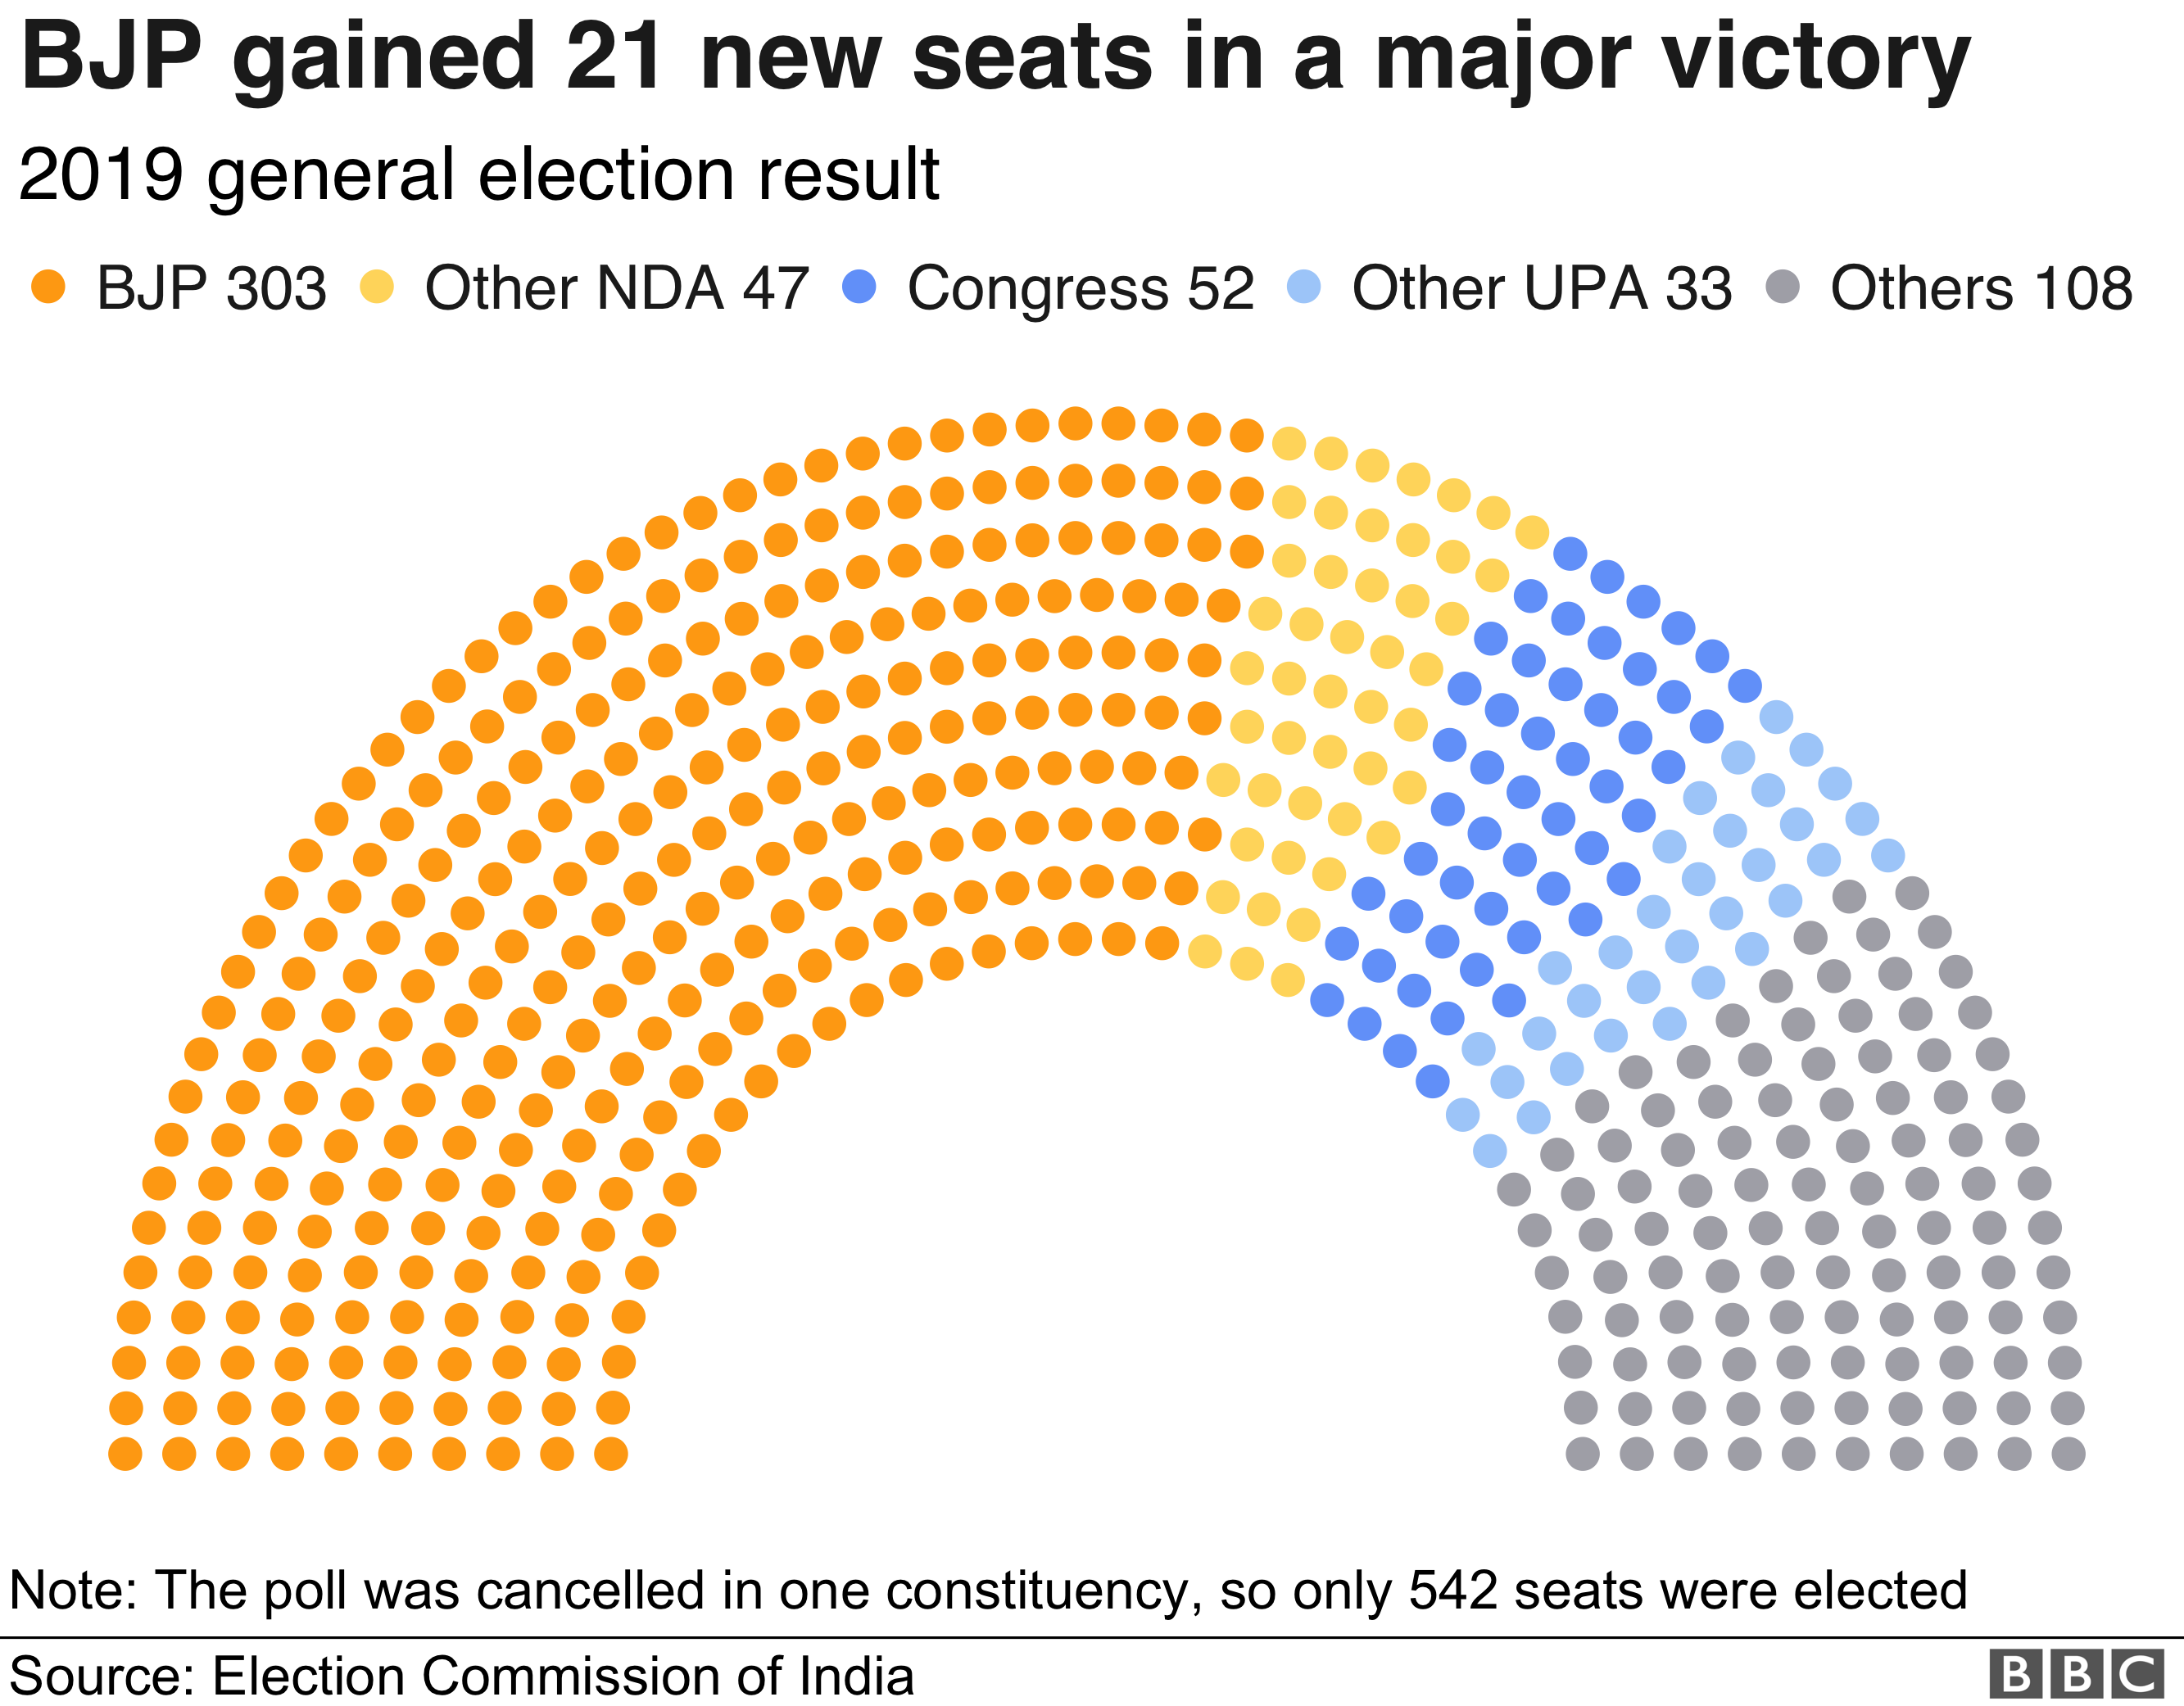 The BJP gained 21 new seats in a mayor victory